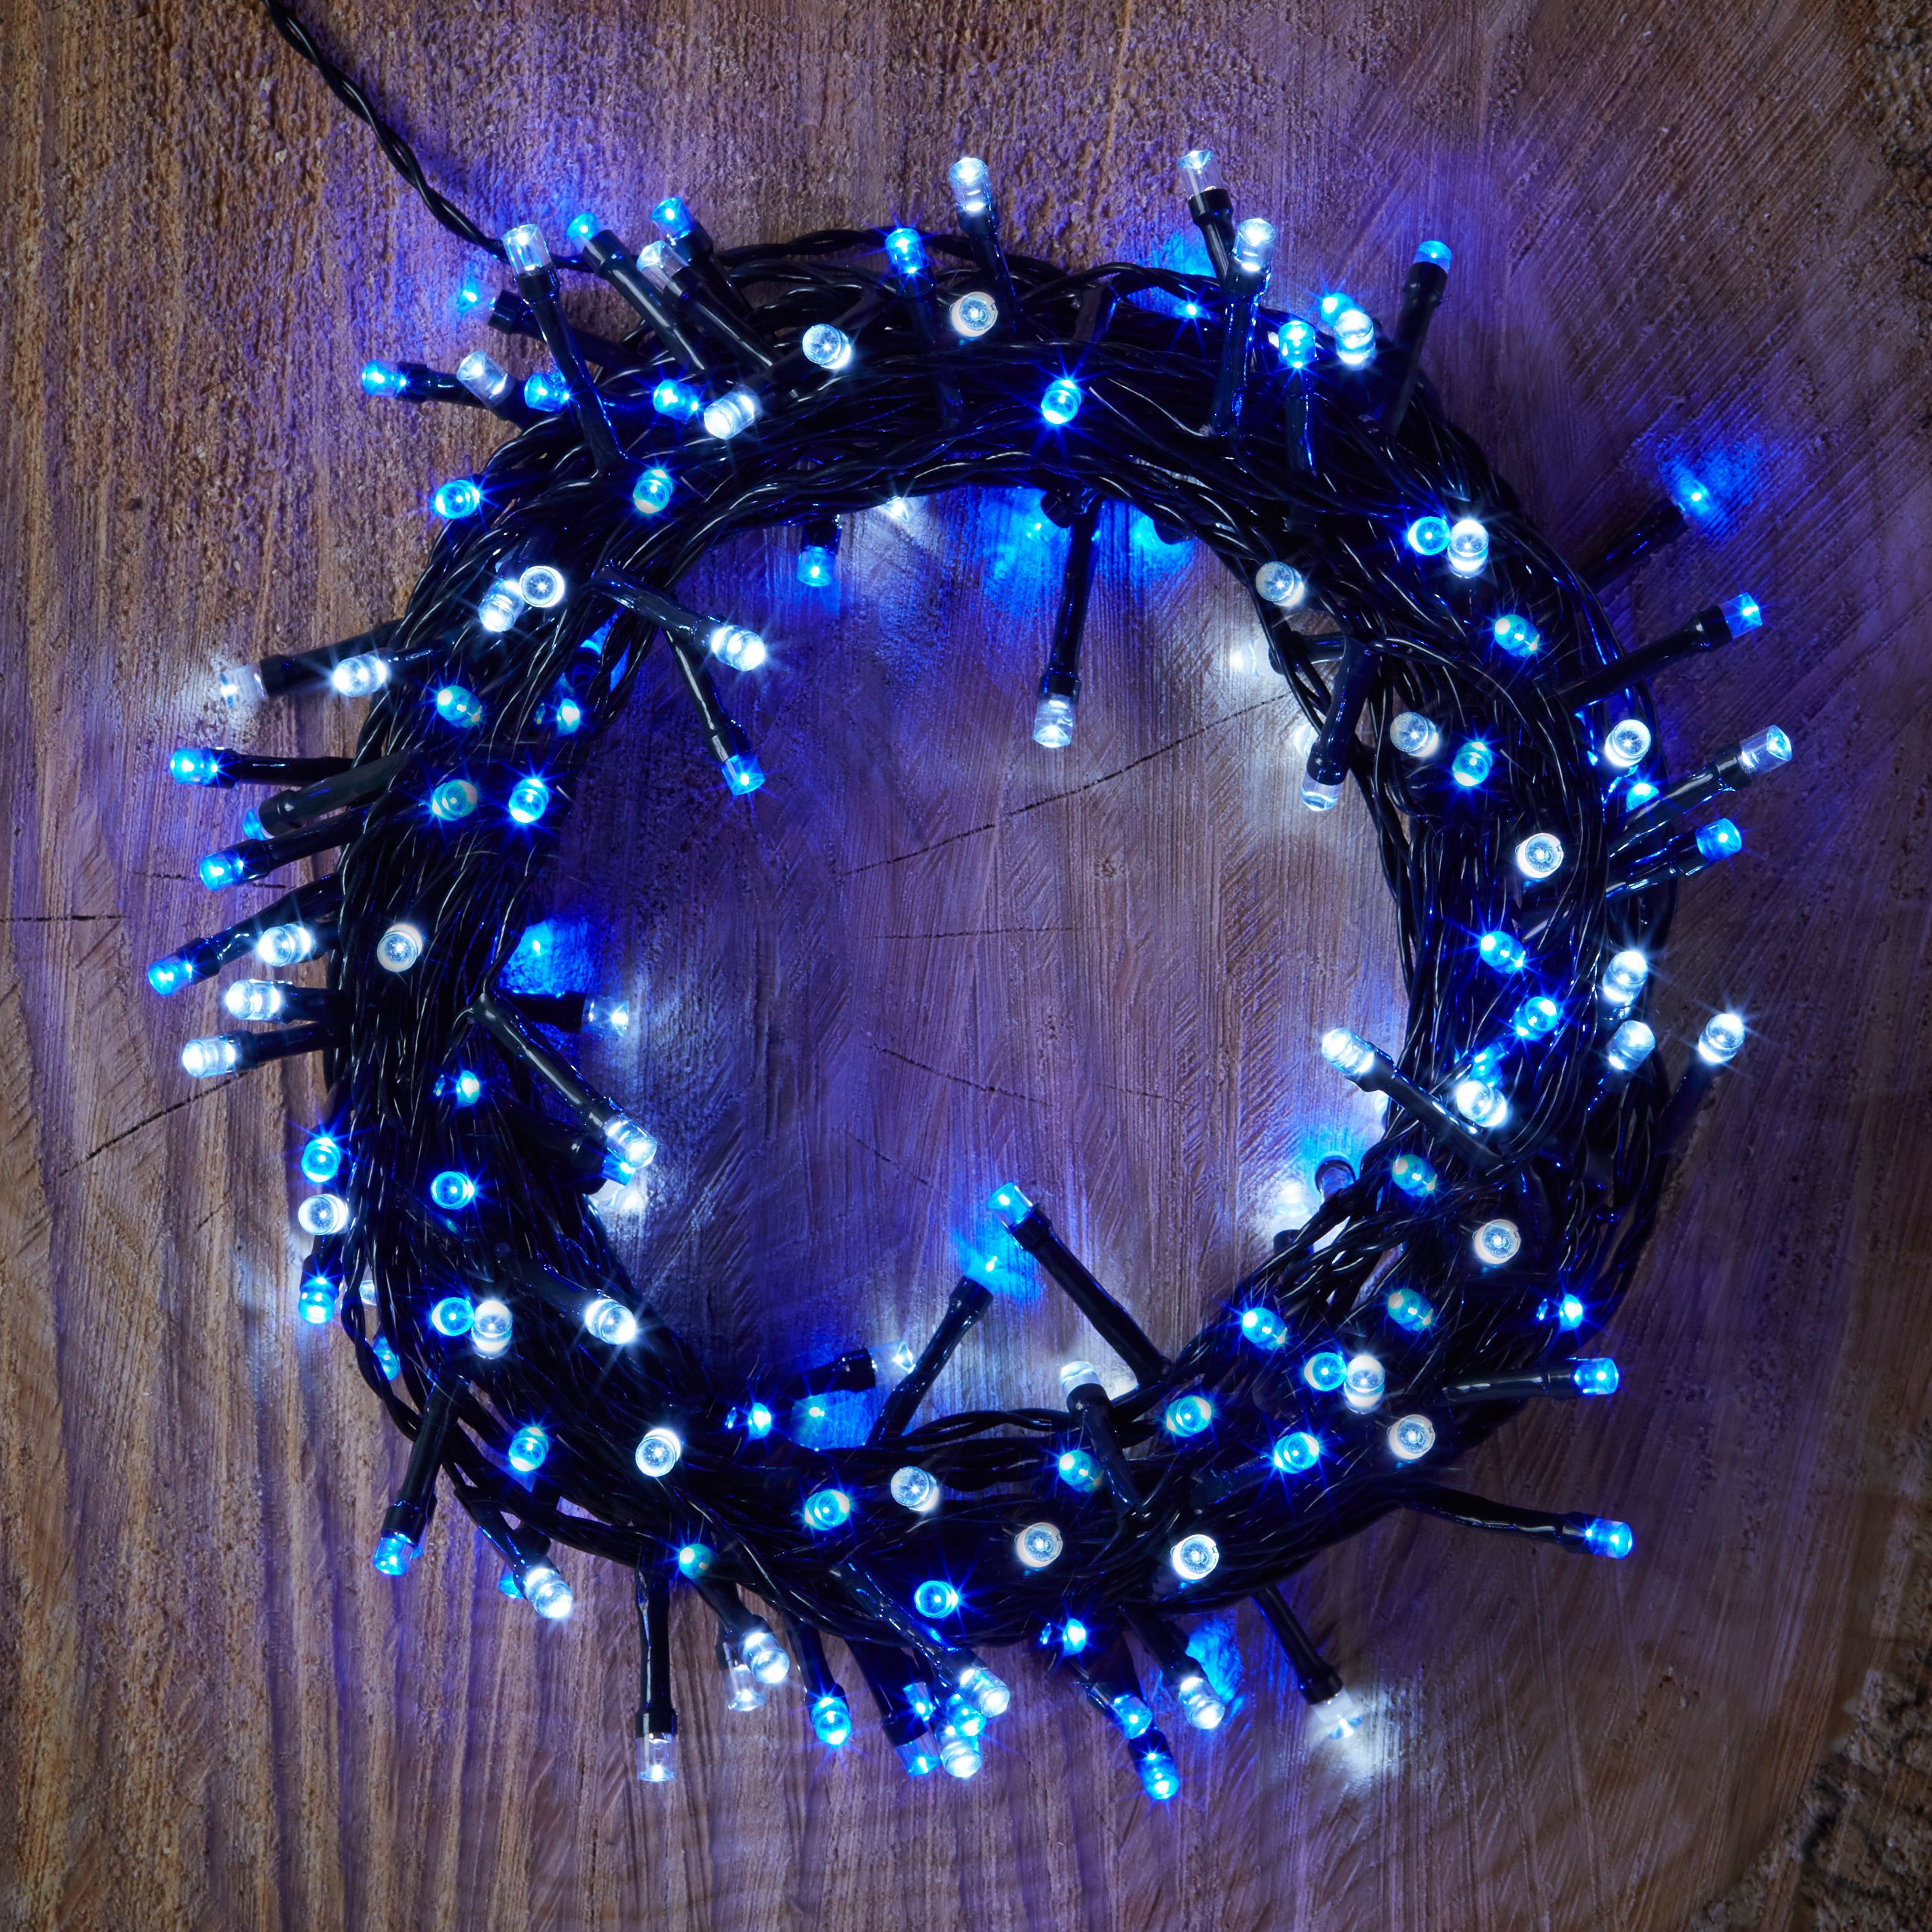 Led String Lights Diy : Battery Operated 120 Blue & White LED String Lights Departments DIY at B&Q